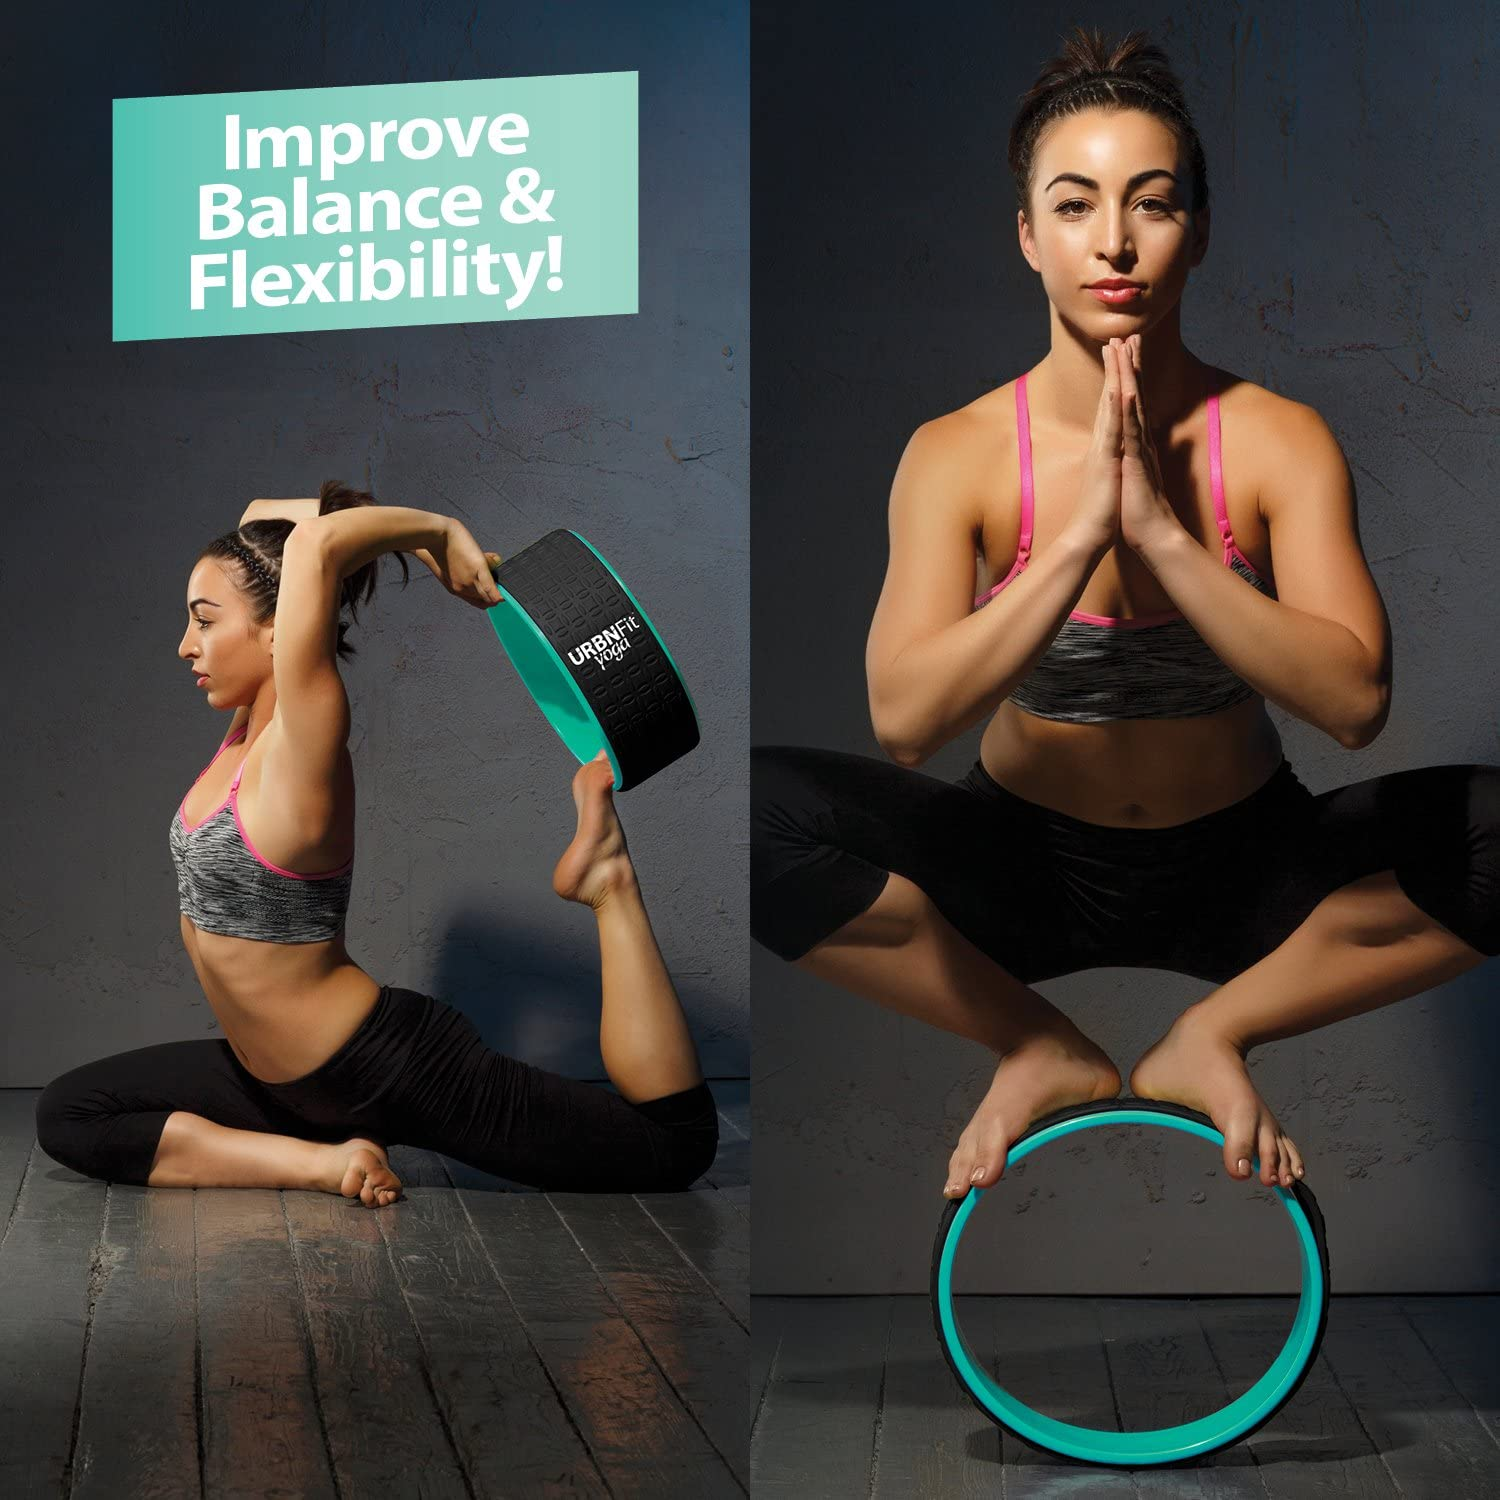 Backbends & Inversions Flexibility Stationary Prop to Assist ...